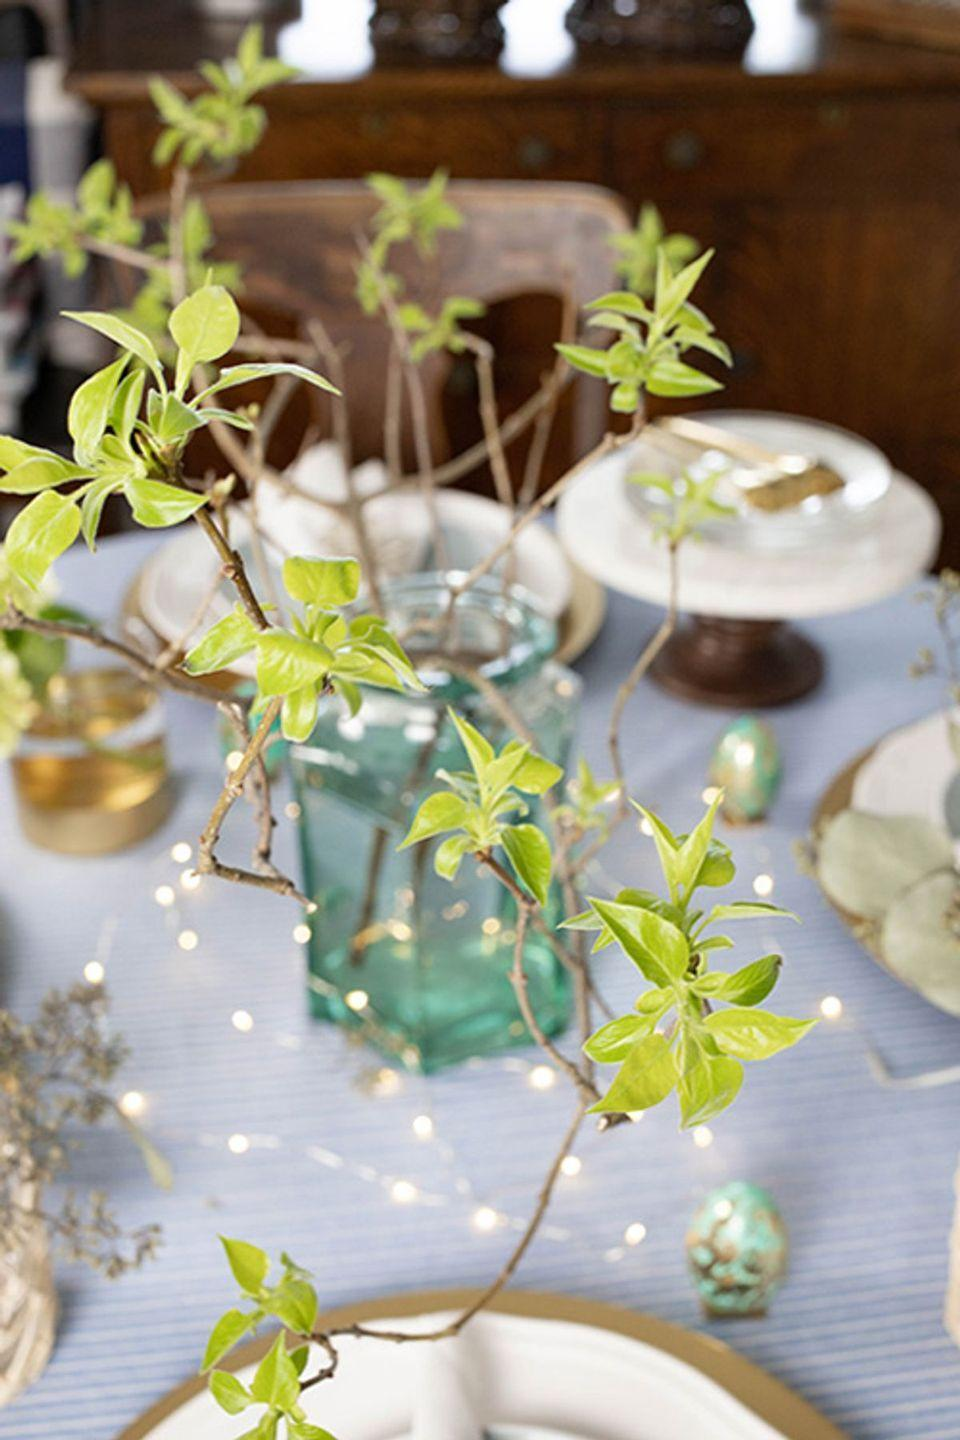 """<p>Don't downsize your party just because it's virtual. It's more important than ever to treat yourself and those you love, so get out that wedding china. Dress up the table with vases of flowers and fairy lights. Use the """"good"""" tablecloth. And the bonus? Treating or rewarding oneself can create <a href=""""https://www.sciencedirect.com/science/article/abs/pii/S1364661307002458"""" rel=""""nofollow noopener"""" target=""""_blank"""" data-ylk=""""slk:positive feelings in the brain"""" class=""""link rapid-noclick-resp"""">positive feelings in the brain</a>.</p><p><a class=""""link rapid-noclick-resp"""" href=""""https://www.creeklinehouse.com/making-celebrations-special-during-social-distancing/"""" rel=""""nofollow noopener"""" target=""""_blank"""" data-ylk=""""slk:GET THE TIPS"""">GET THE TIPS</a></p><p><a class=""""link rapid-noclick-resp"""" href=""""https://www.amazon.com/ANJAYLIA-Festival-Decorations-Crafting-Operated/dp/B01EWBC55A/?tag=syn-yahoo-20&ascsubtag=%5Bartid%7C10072.g.32466287%5Bsrc%7Cyahoo-us"""" rel=""""nofollow noopener"""" target=""""_blank"""" data-ylk=""""slk:SHOP FAIRY LIGHTS"""">SHOP FAIRY LIGHTS</a></p>"""